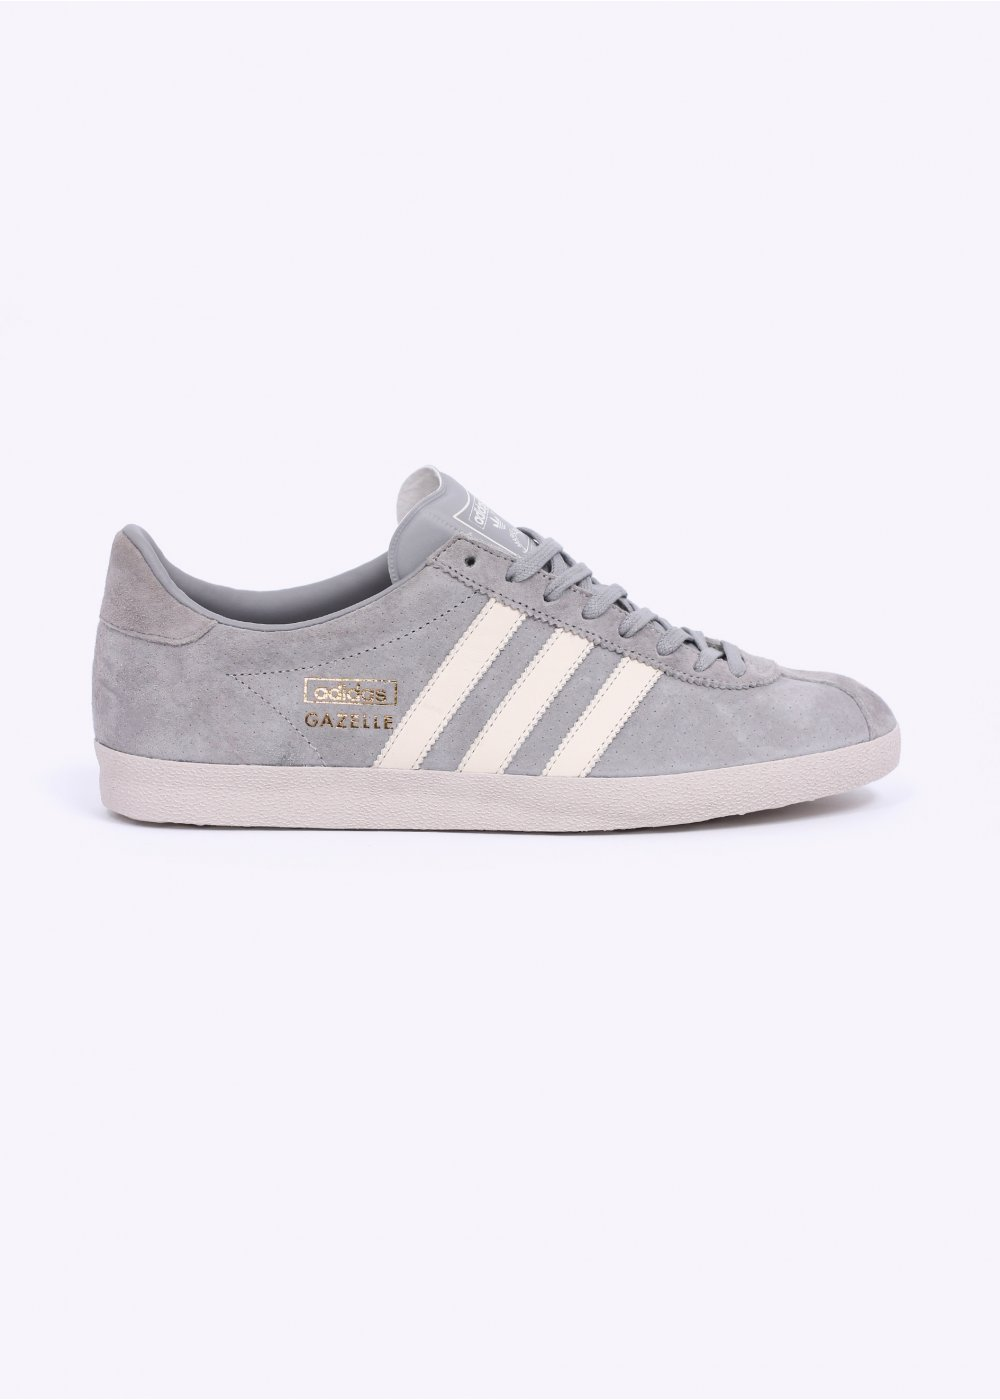 adidas Originals Footwear Gazelle OG Trainers Solid Grey White Pearl Grey